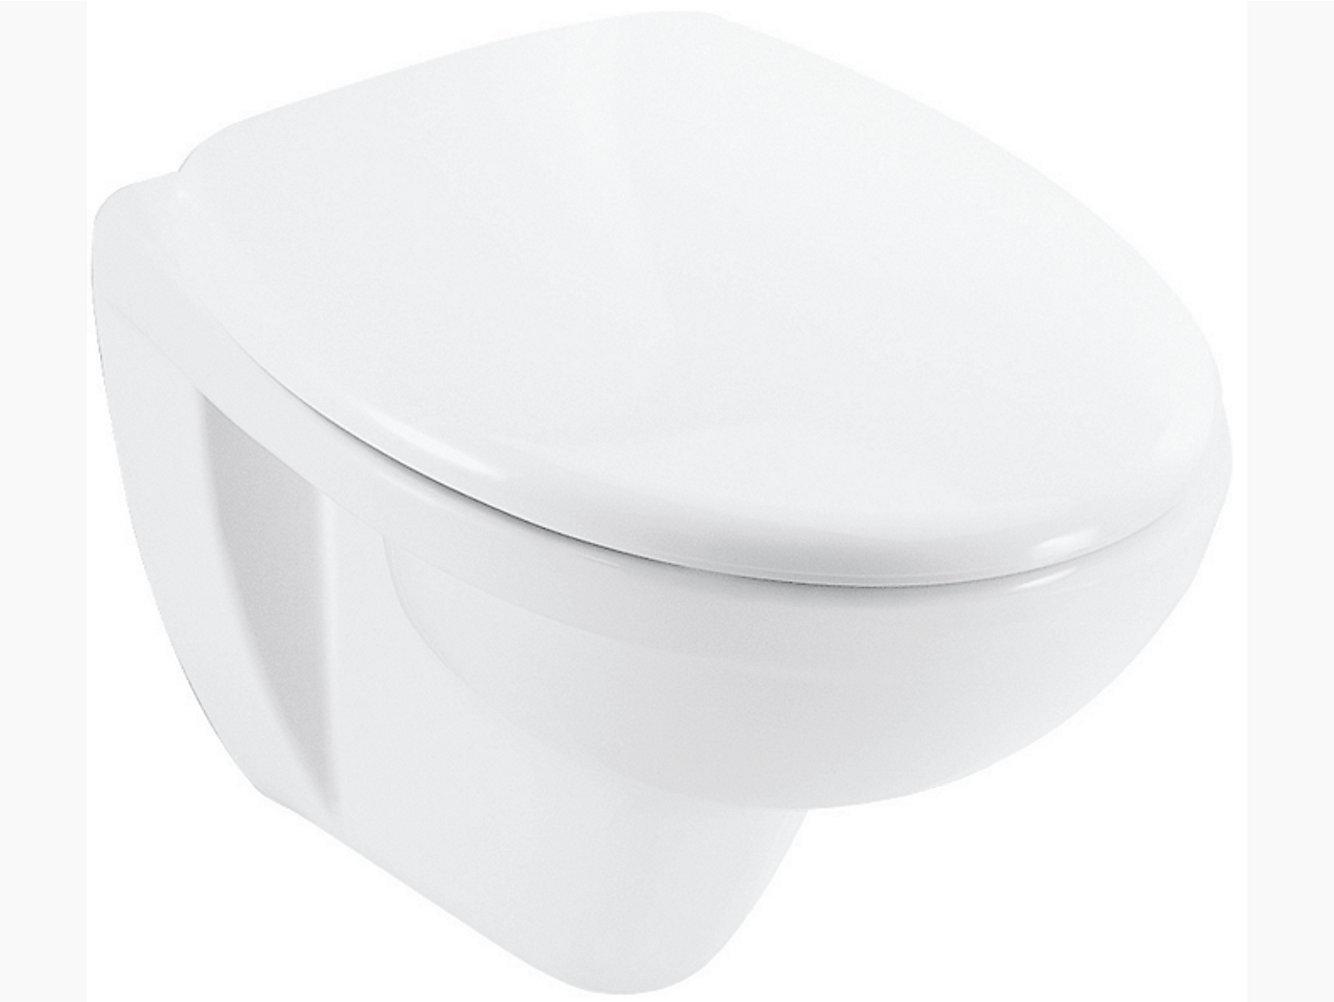 Patio Wall Hung Toilet With Quiet Close Tm Seat And Cover K 18131in S Kohler